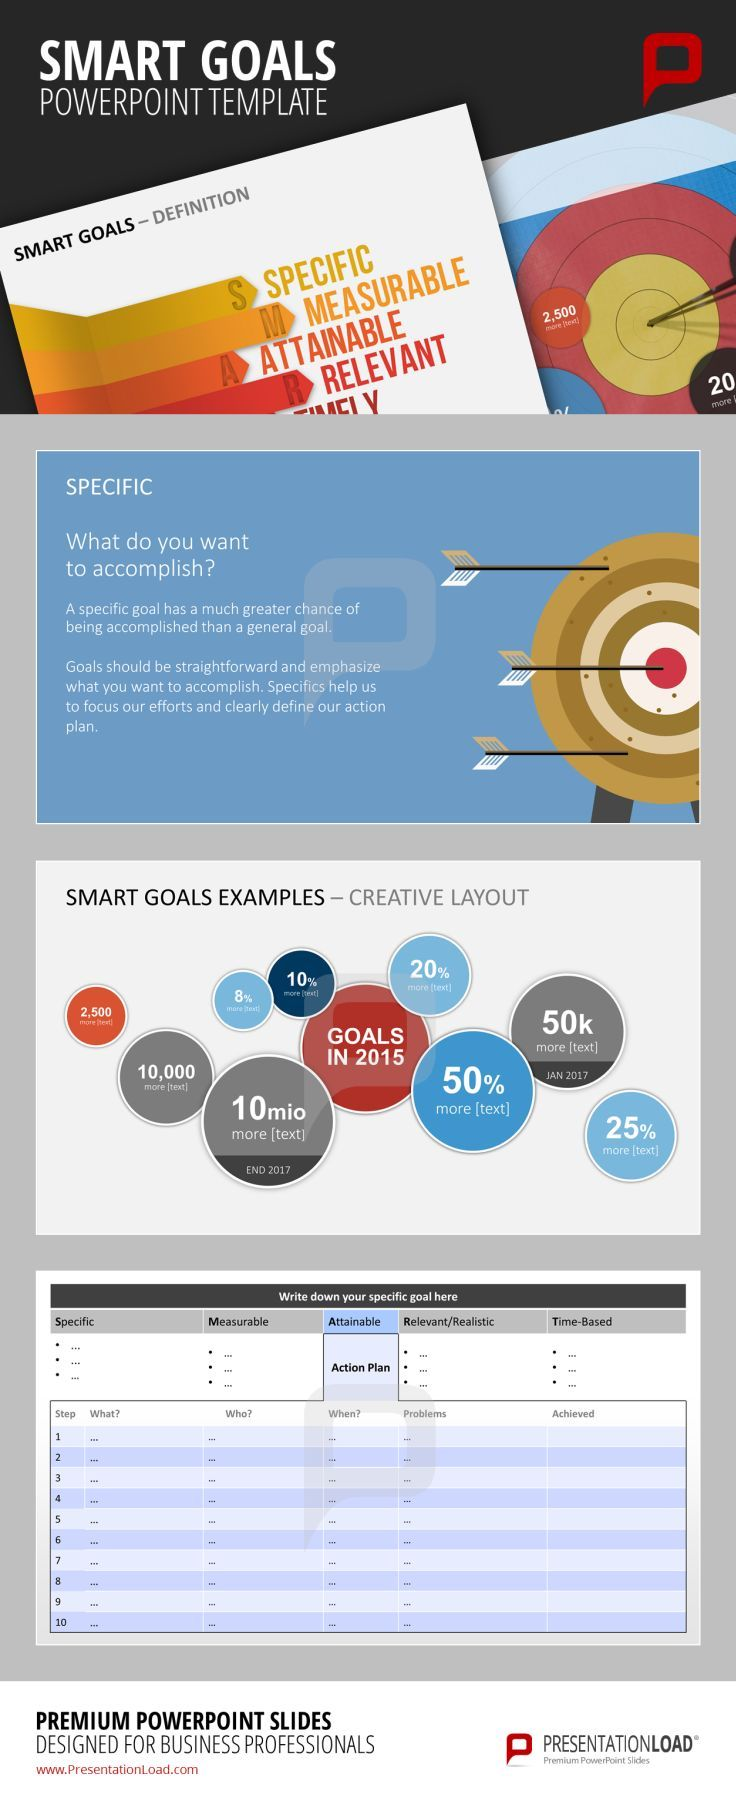 New SMART GOALS templates for your PowerPoint Presentation. For more ...